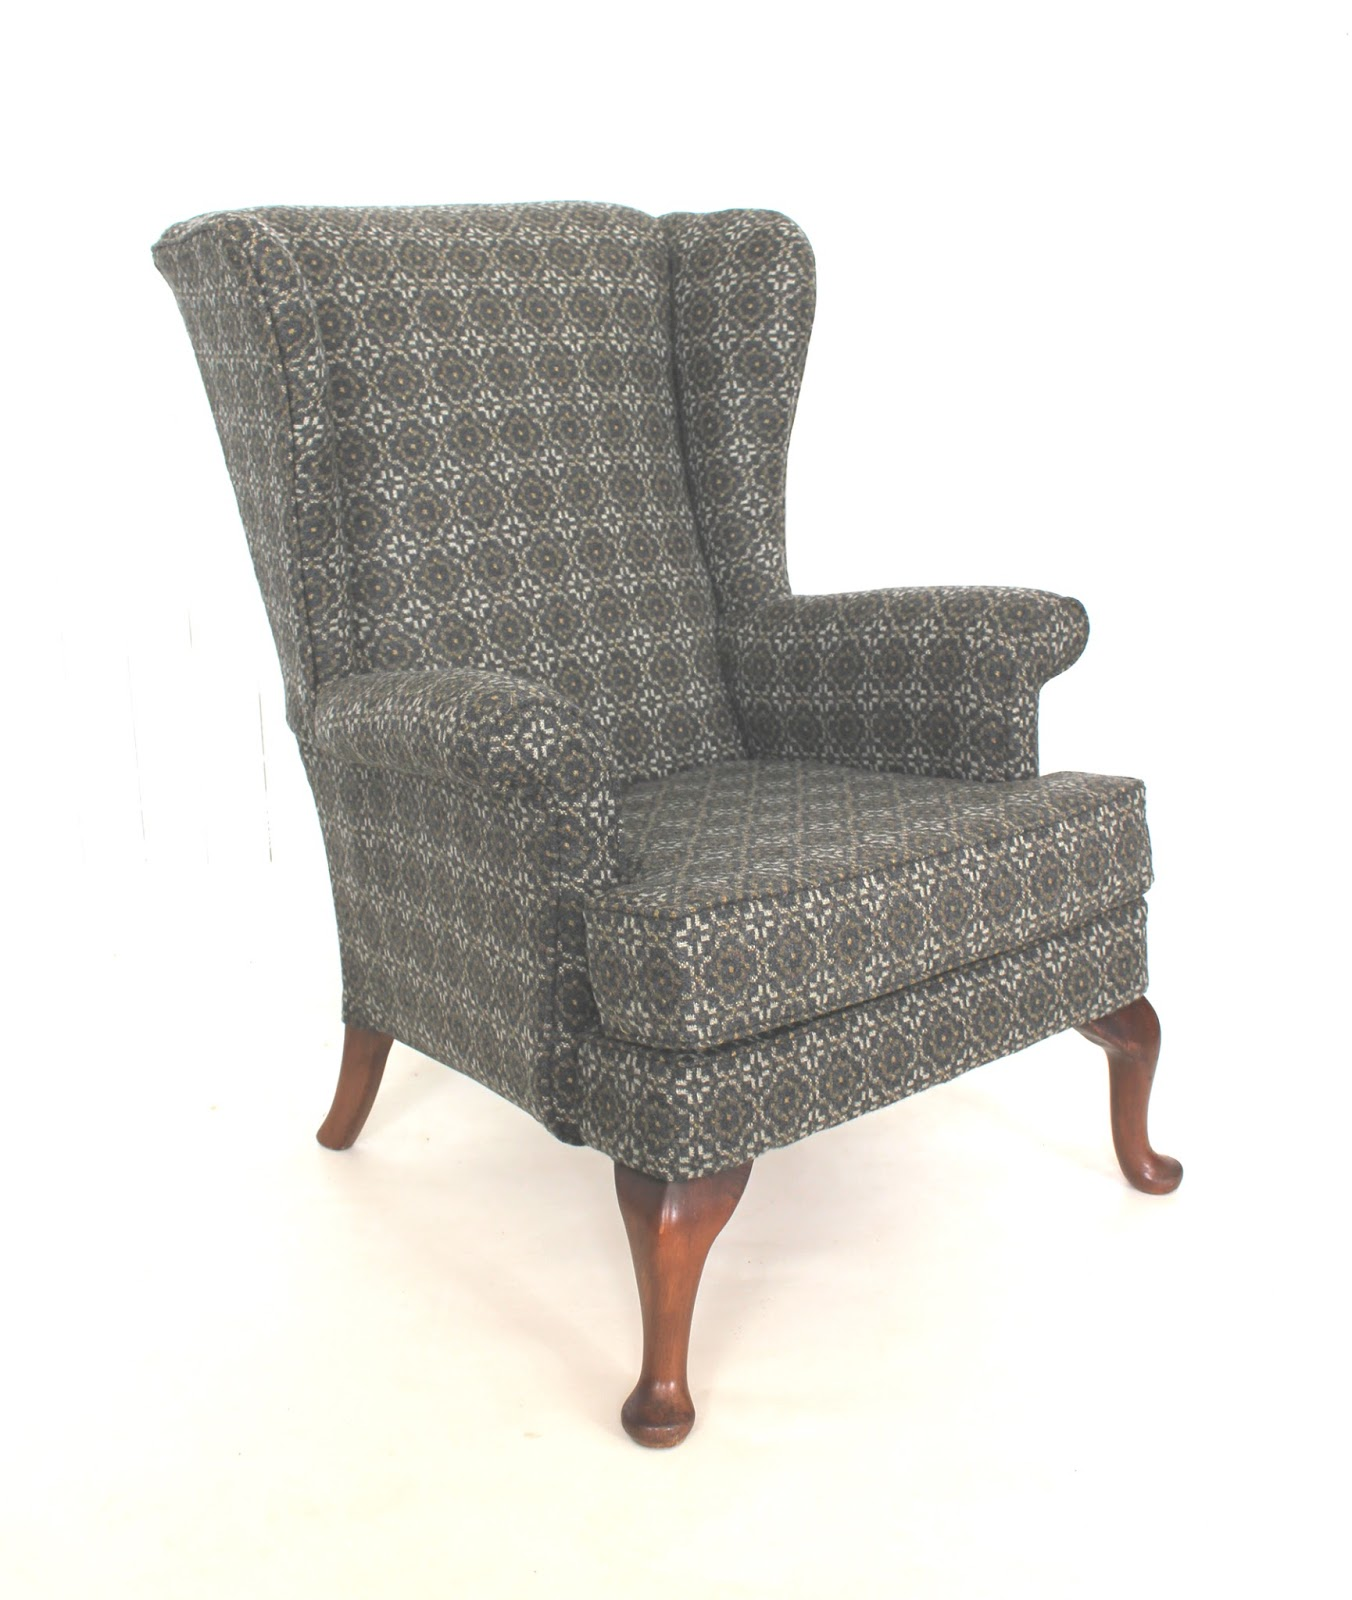 A Parker Knoll 720 Armchair Reupholstered In Melin Tregwynt Vintage Rose  Olive 100% Wool Fabric